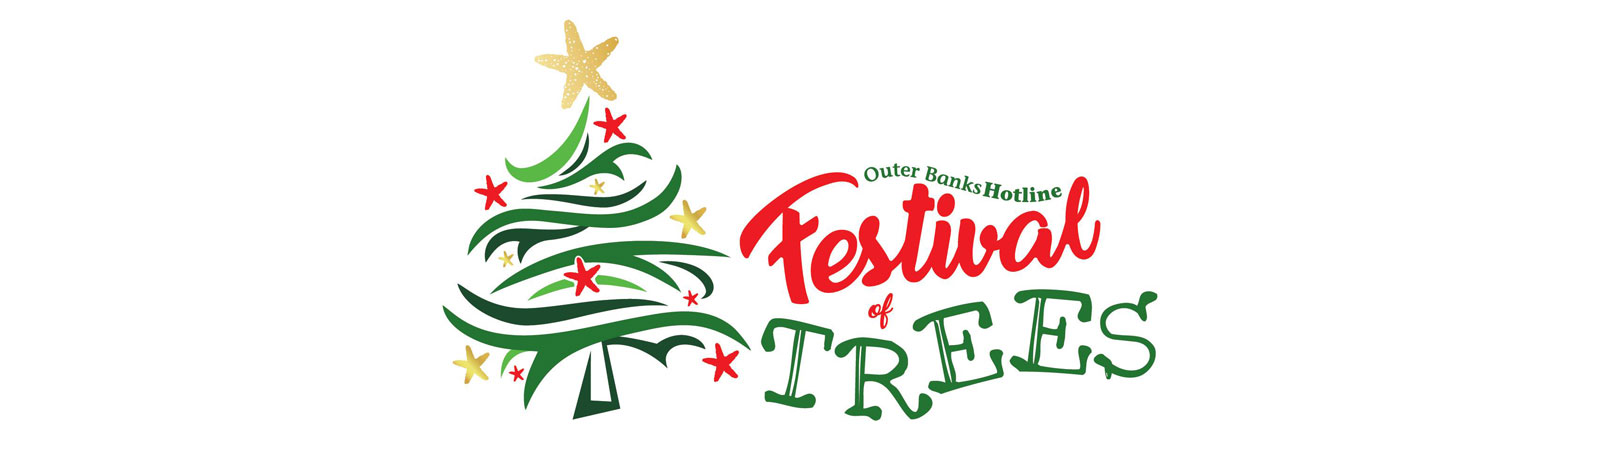 Outer Banks Festival of Trees